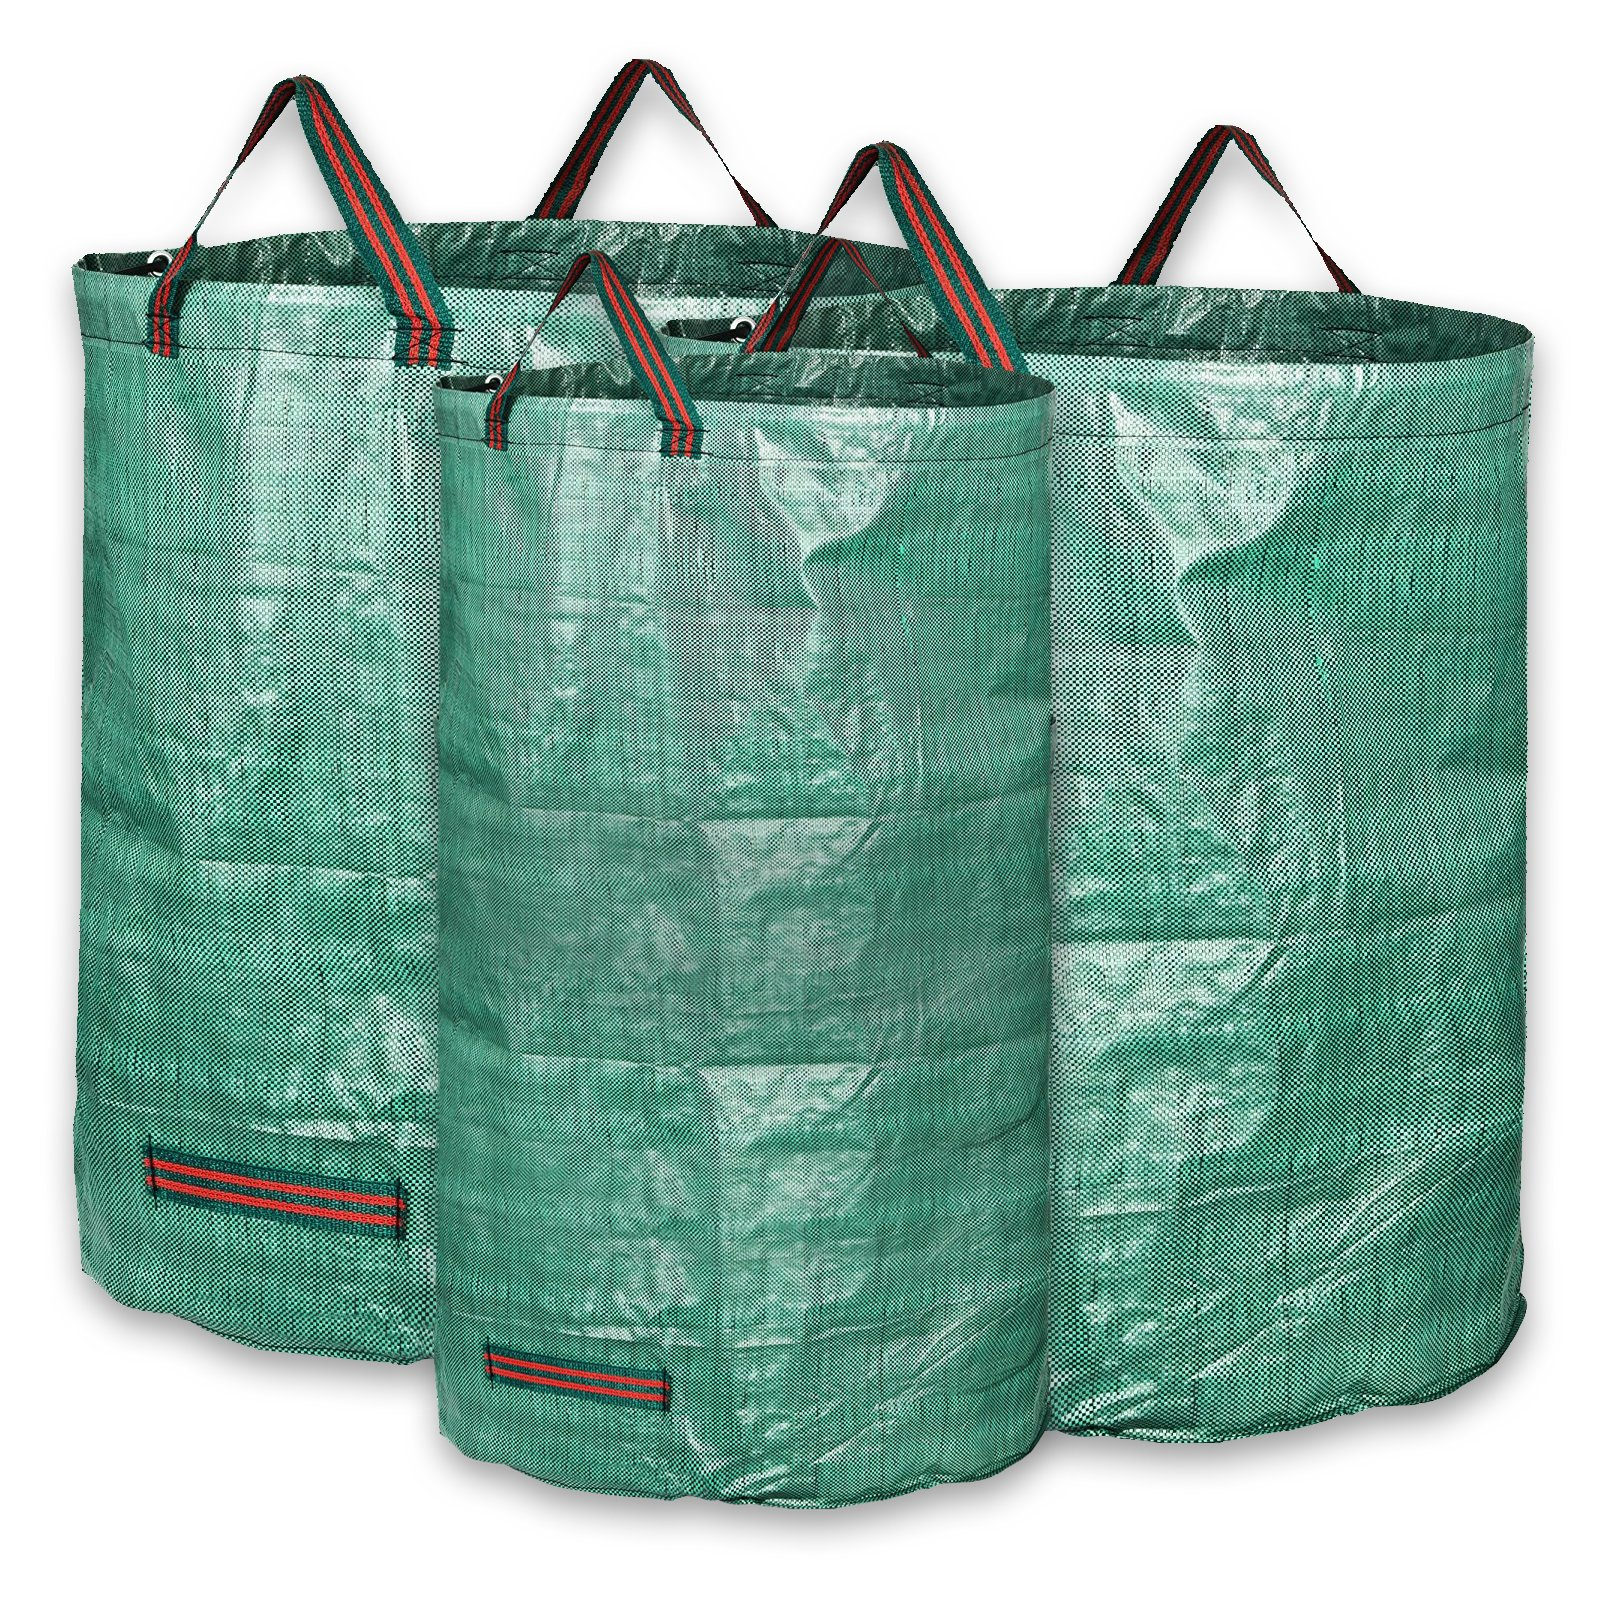 KORAM 3-Pack Garden Waste Bags Heavy Duty Reusable Gardening Yard Lawn Leaf Bag- 2x 72 Gallons,1x 32 Gallons